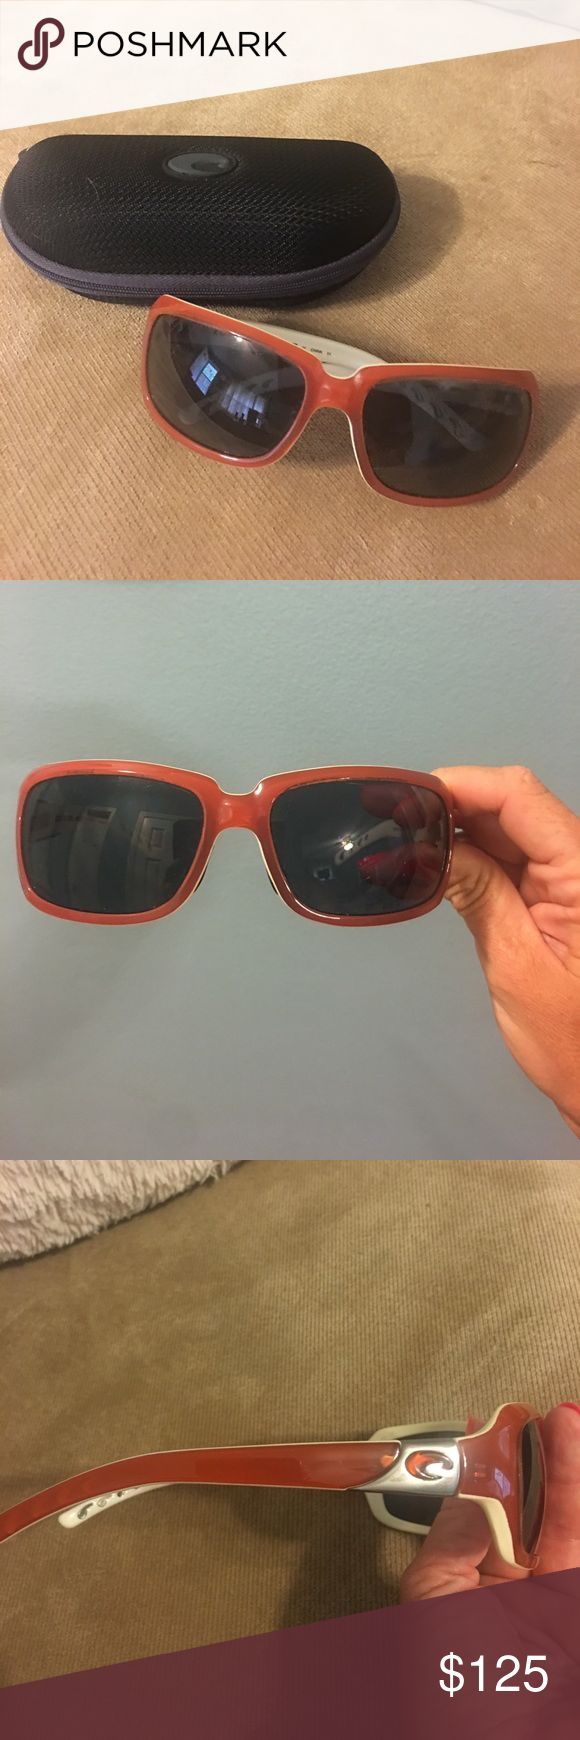 Women's Costa Del Mar Sunglasses Beautiful women's Costa Del Mar sunglasses!! Burnt orange frames and the inside is white.   Style: Isabela                   580p polarized lenses. These sunglasses are in AMAZING condition and in my opinion, Costa sunglasses are the best on the market. Comes with the case! Costa Del Mar Accessories Glasses